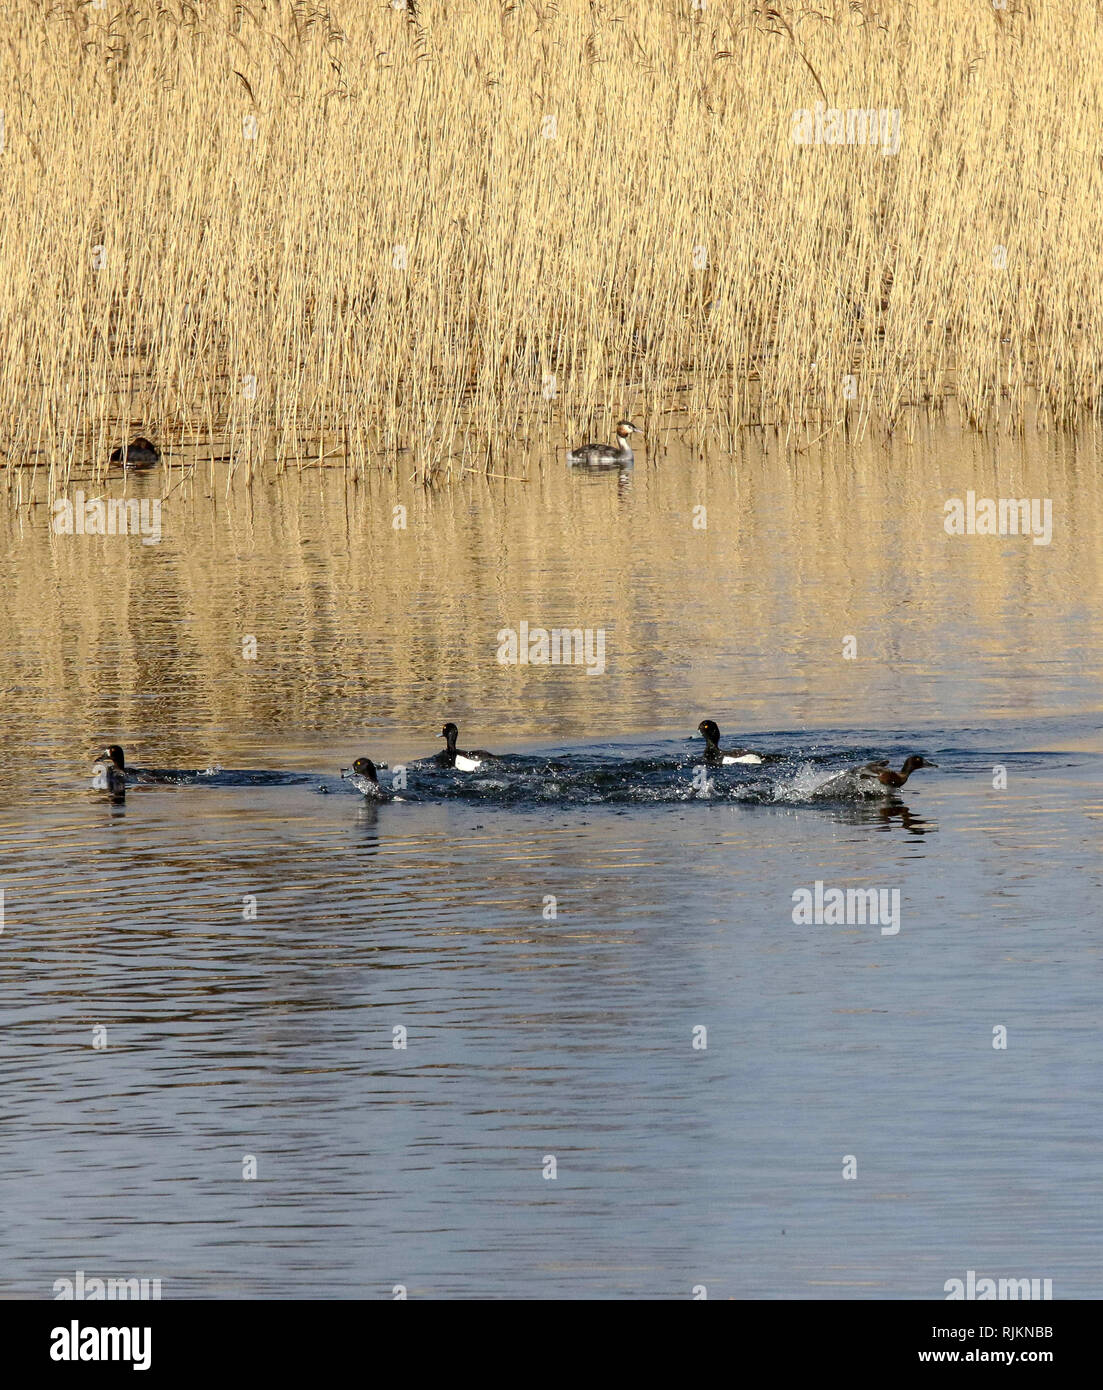 Oxford Island, Lough Neagh, Northern Ireland. 07 February 2019. UK weather - a bright sunny day after persisitent heavy overnight rain. Winds to increase with more heavy rain expected late Friday. Playing in the sunshine - ducks on Lough neagh. Credit: David Hunter/Alamy Live News. - Stock Image